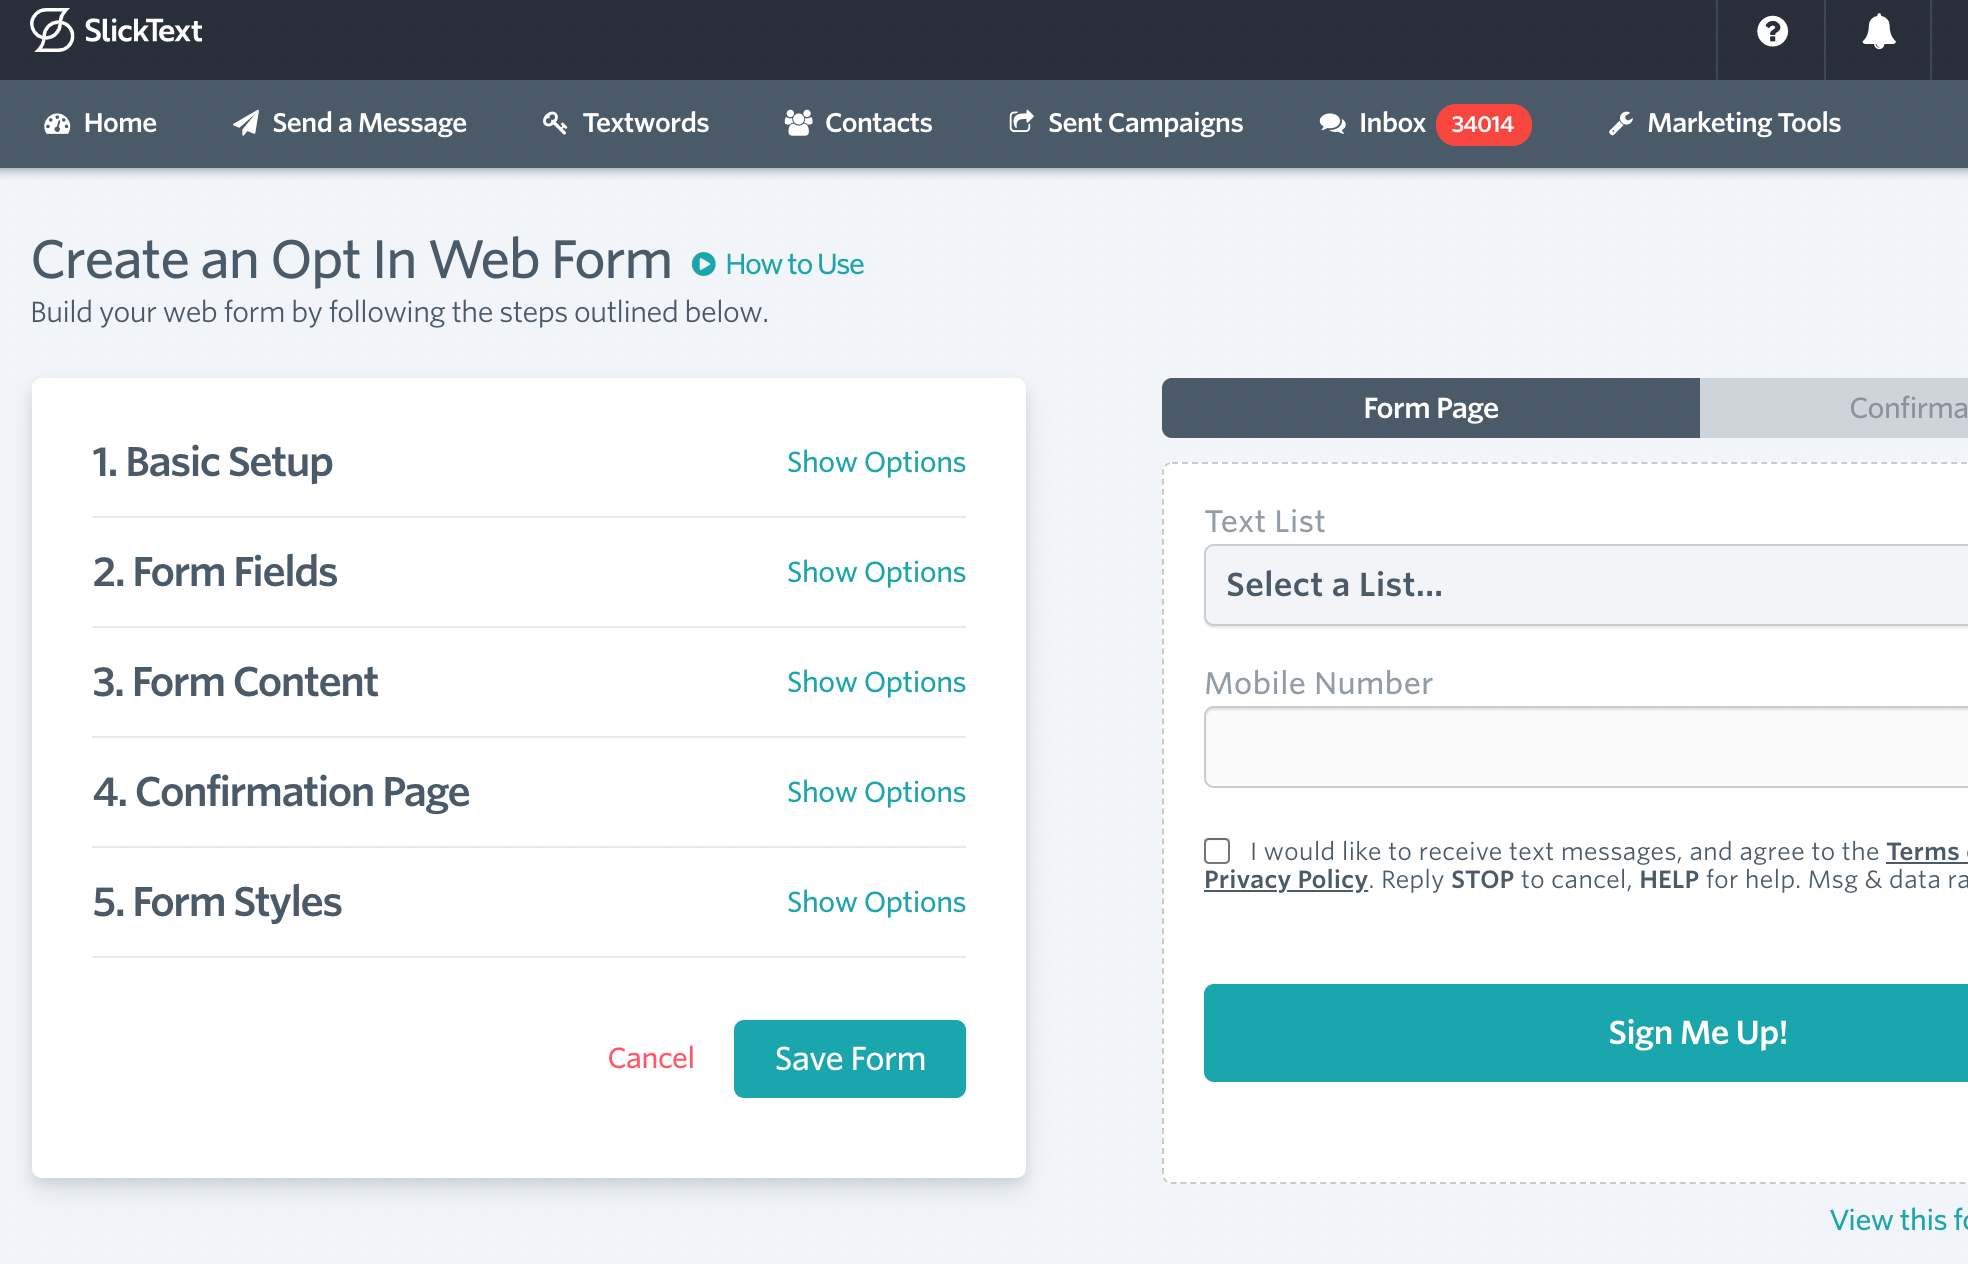 You can create an opt-in form directly from SlickText that allows your audience to subscribe to your text list from your website.